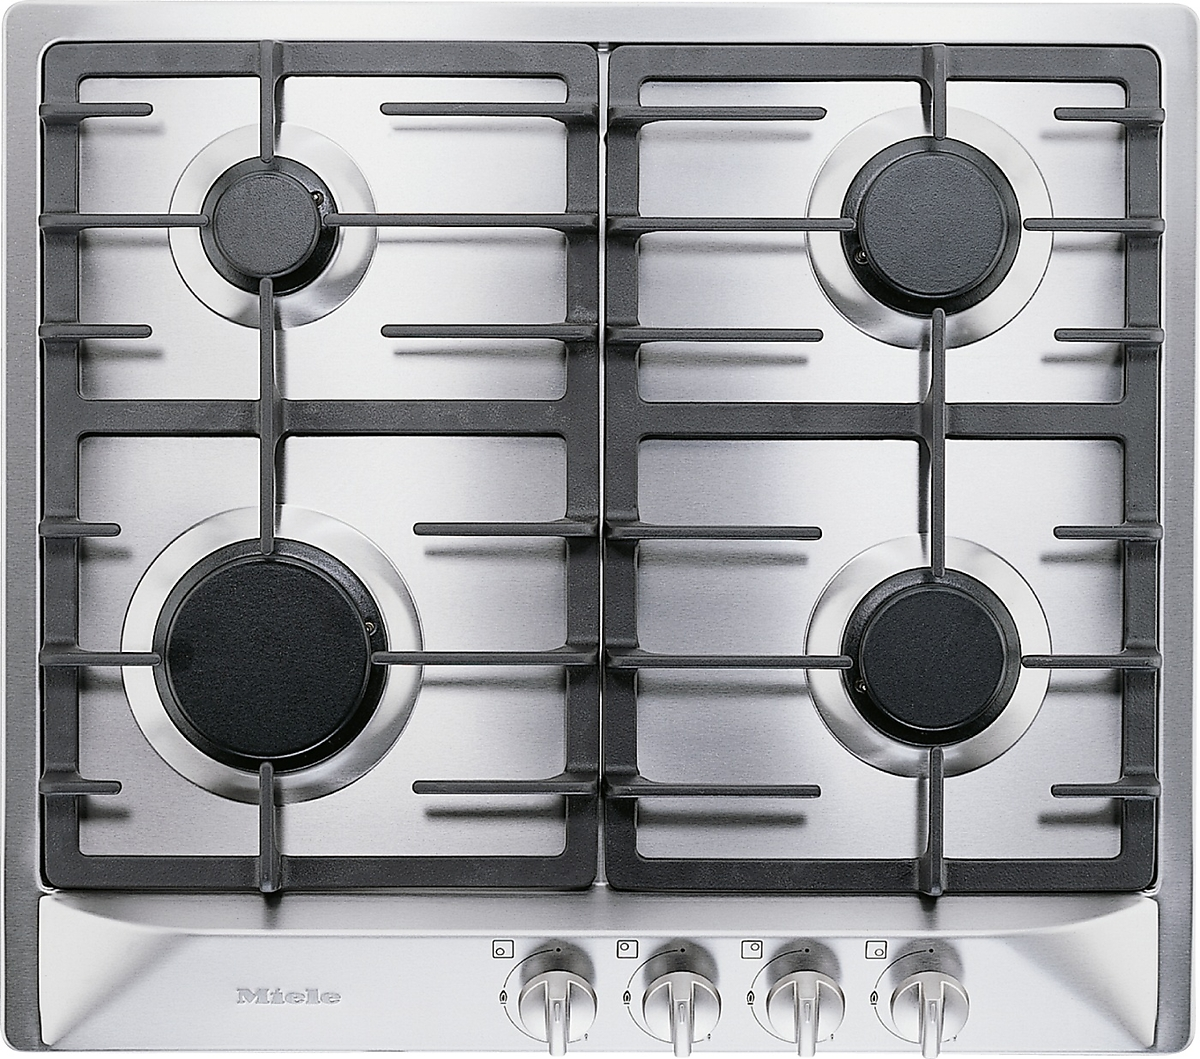 km 360 g gas cooktop with 4 steel